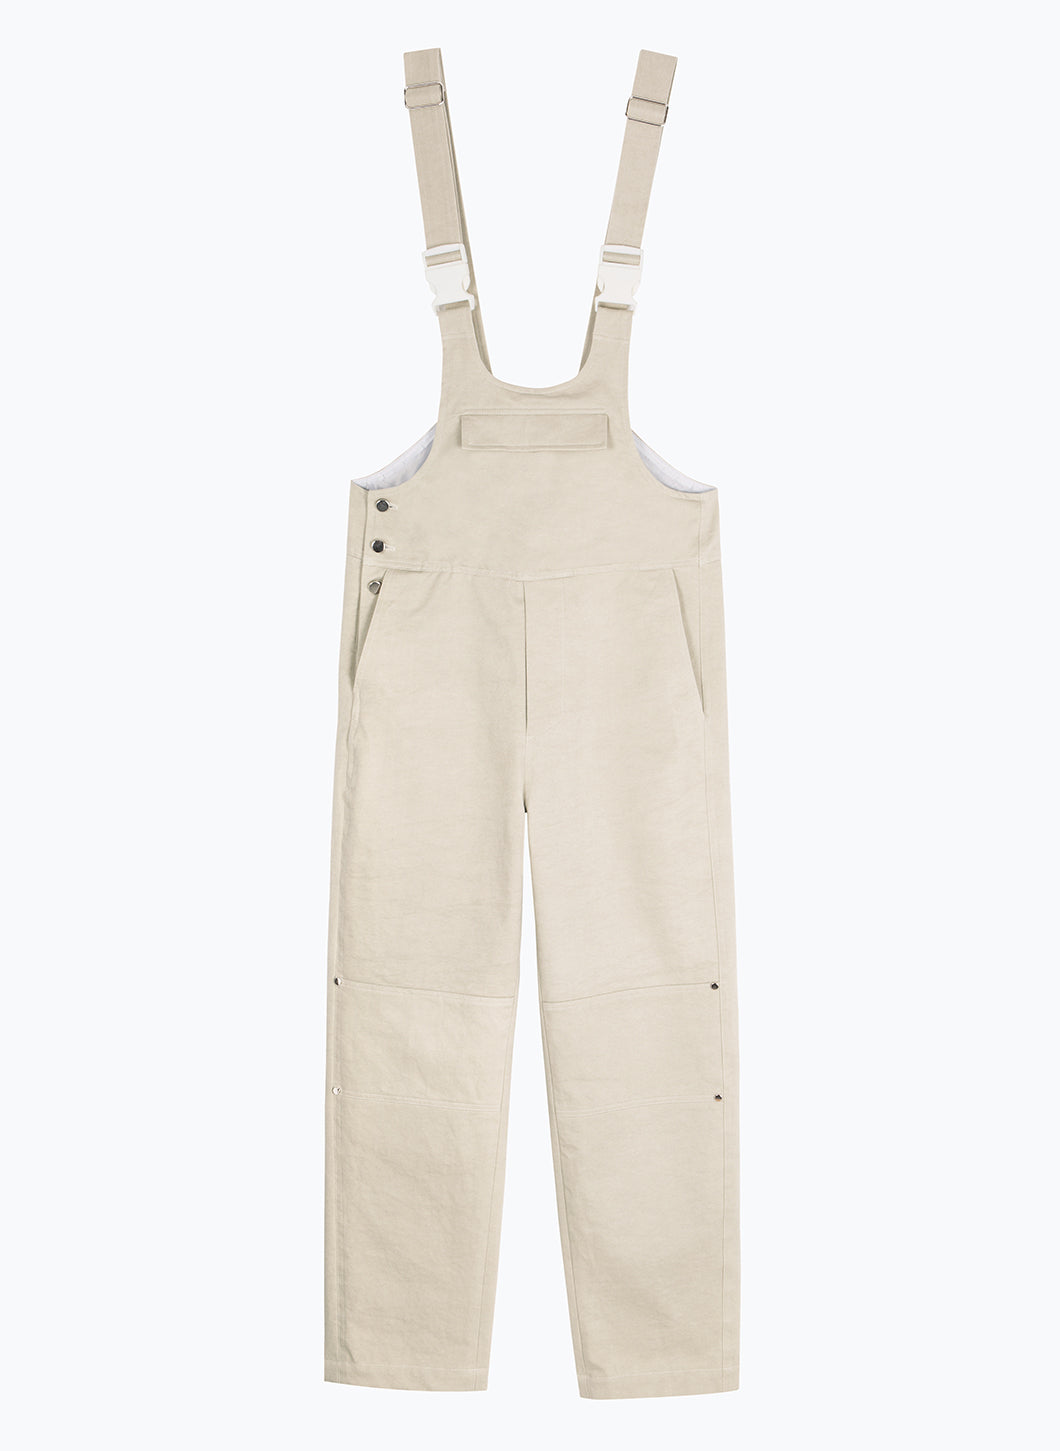 Overalls with Front Flap Pocket in Beige Cotton Twill